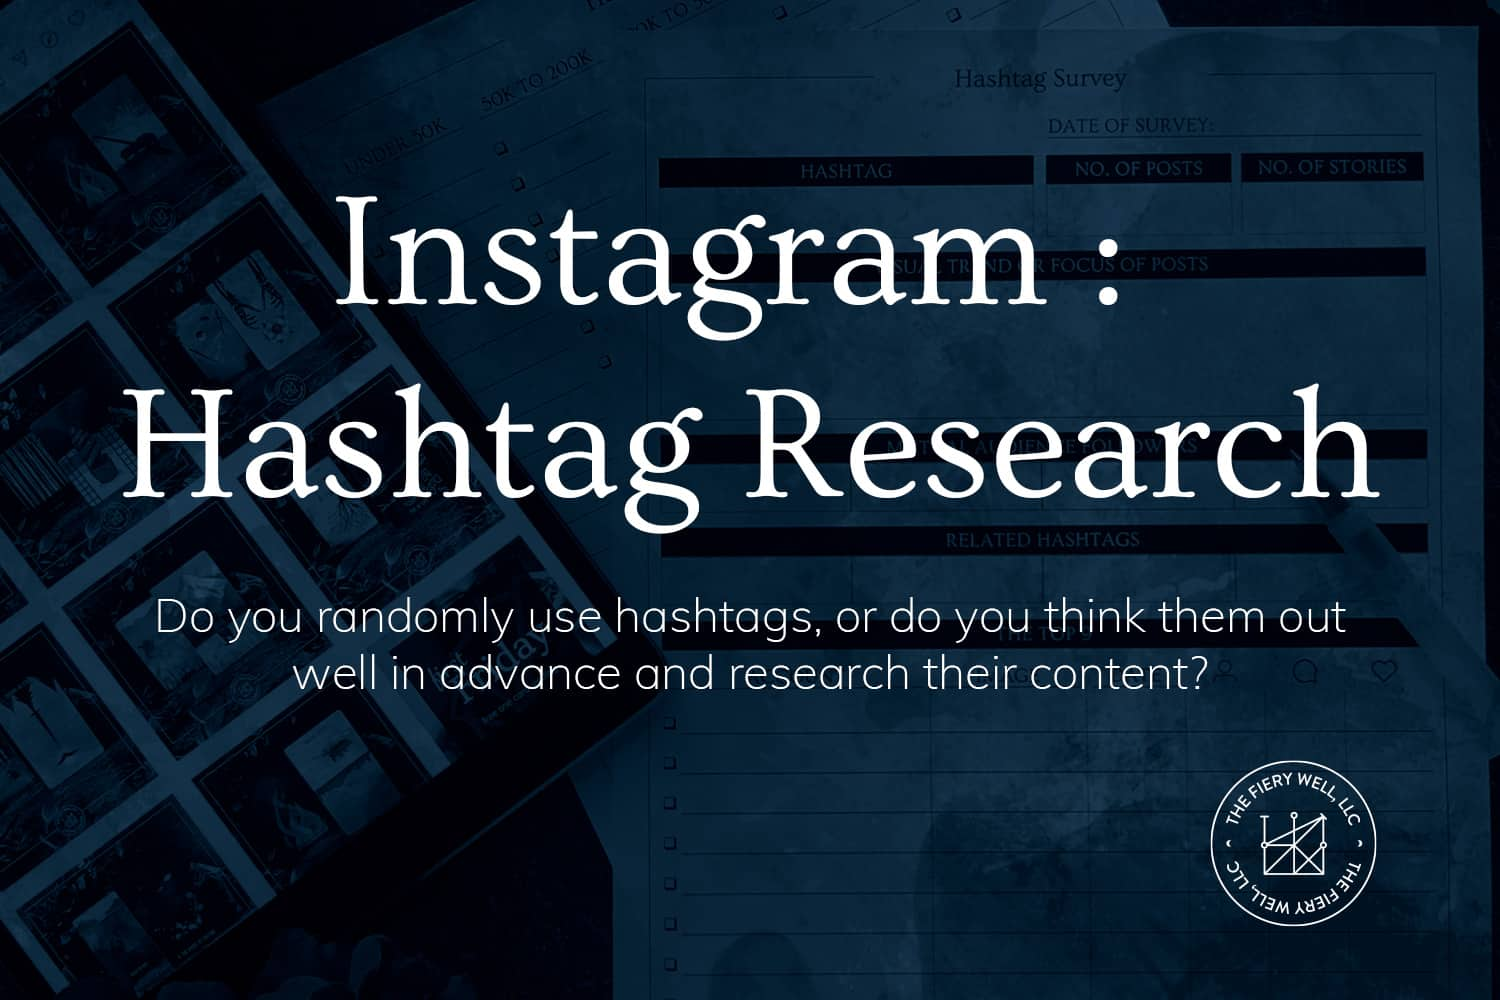 """Instagram : Hashtag Research"" on a dark blue background"